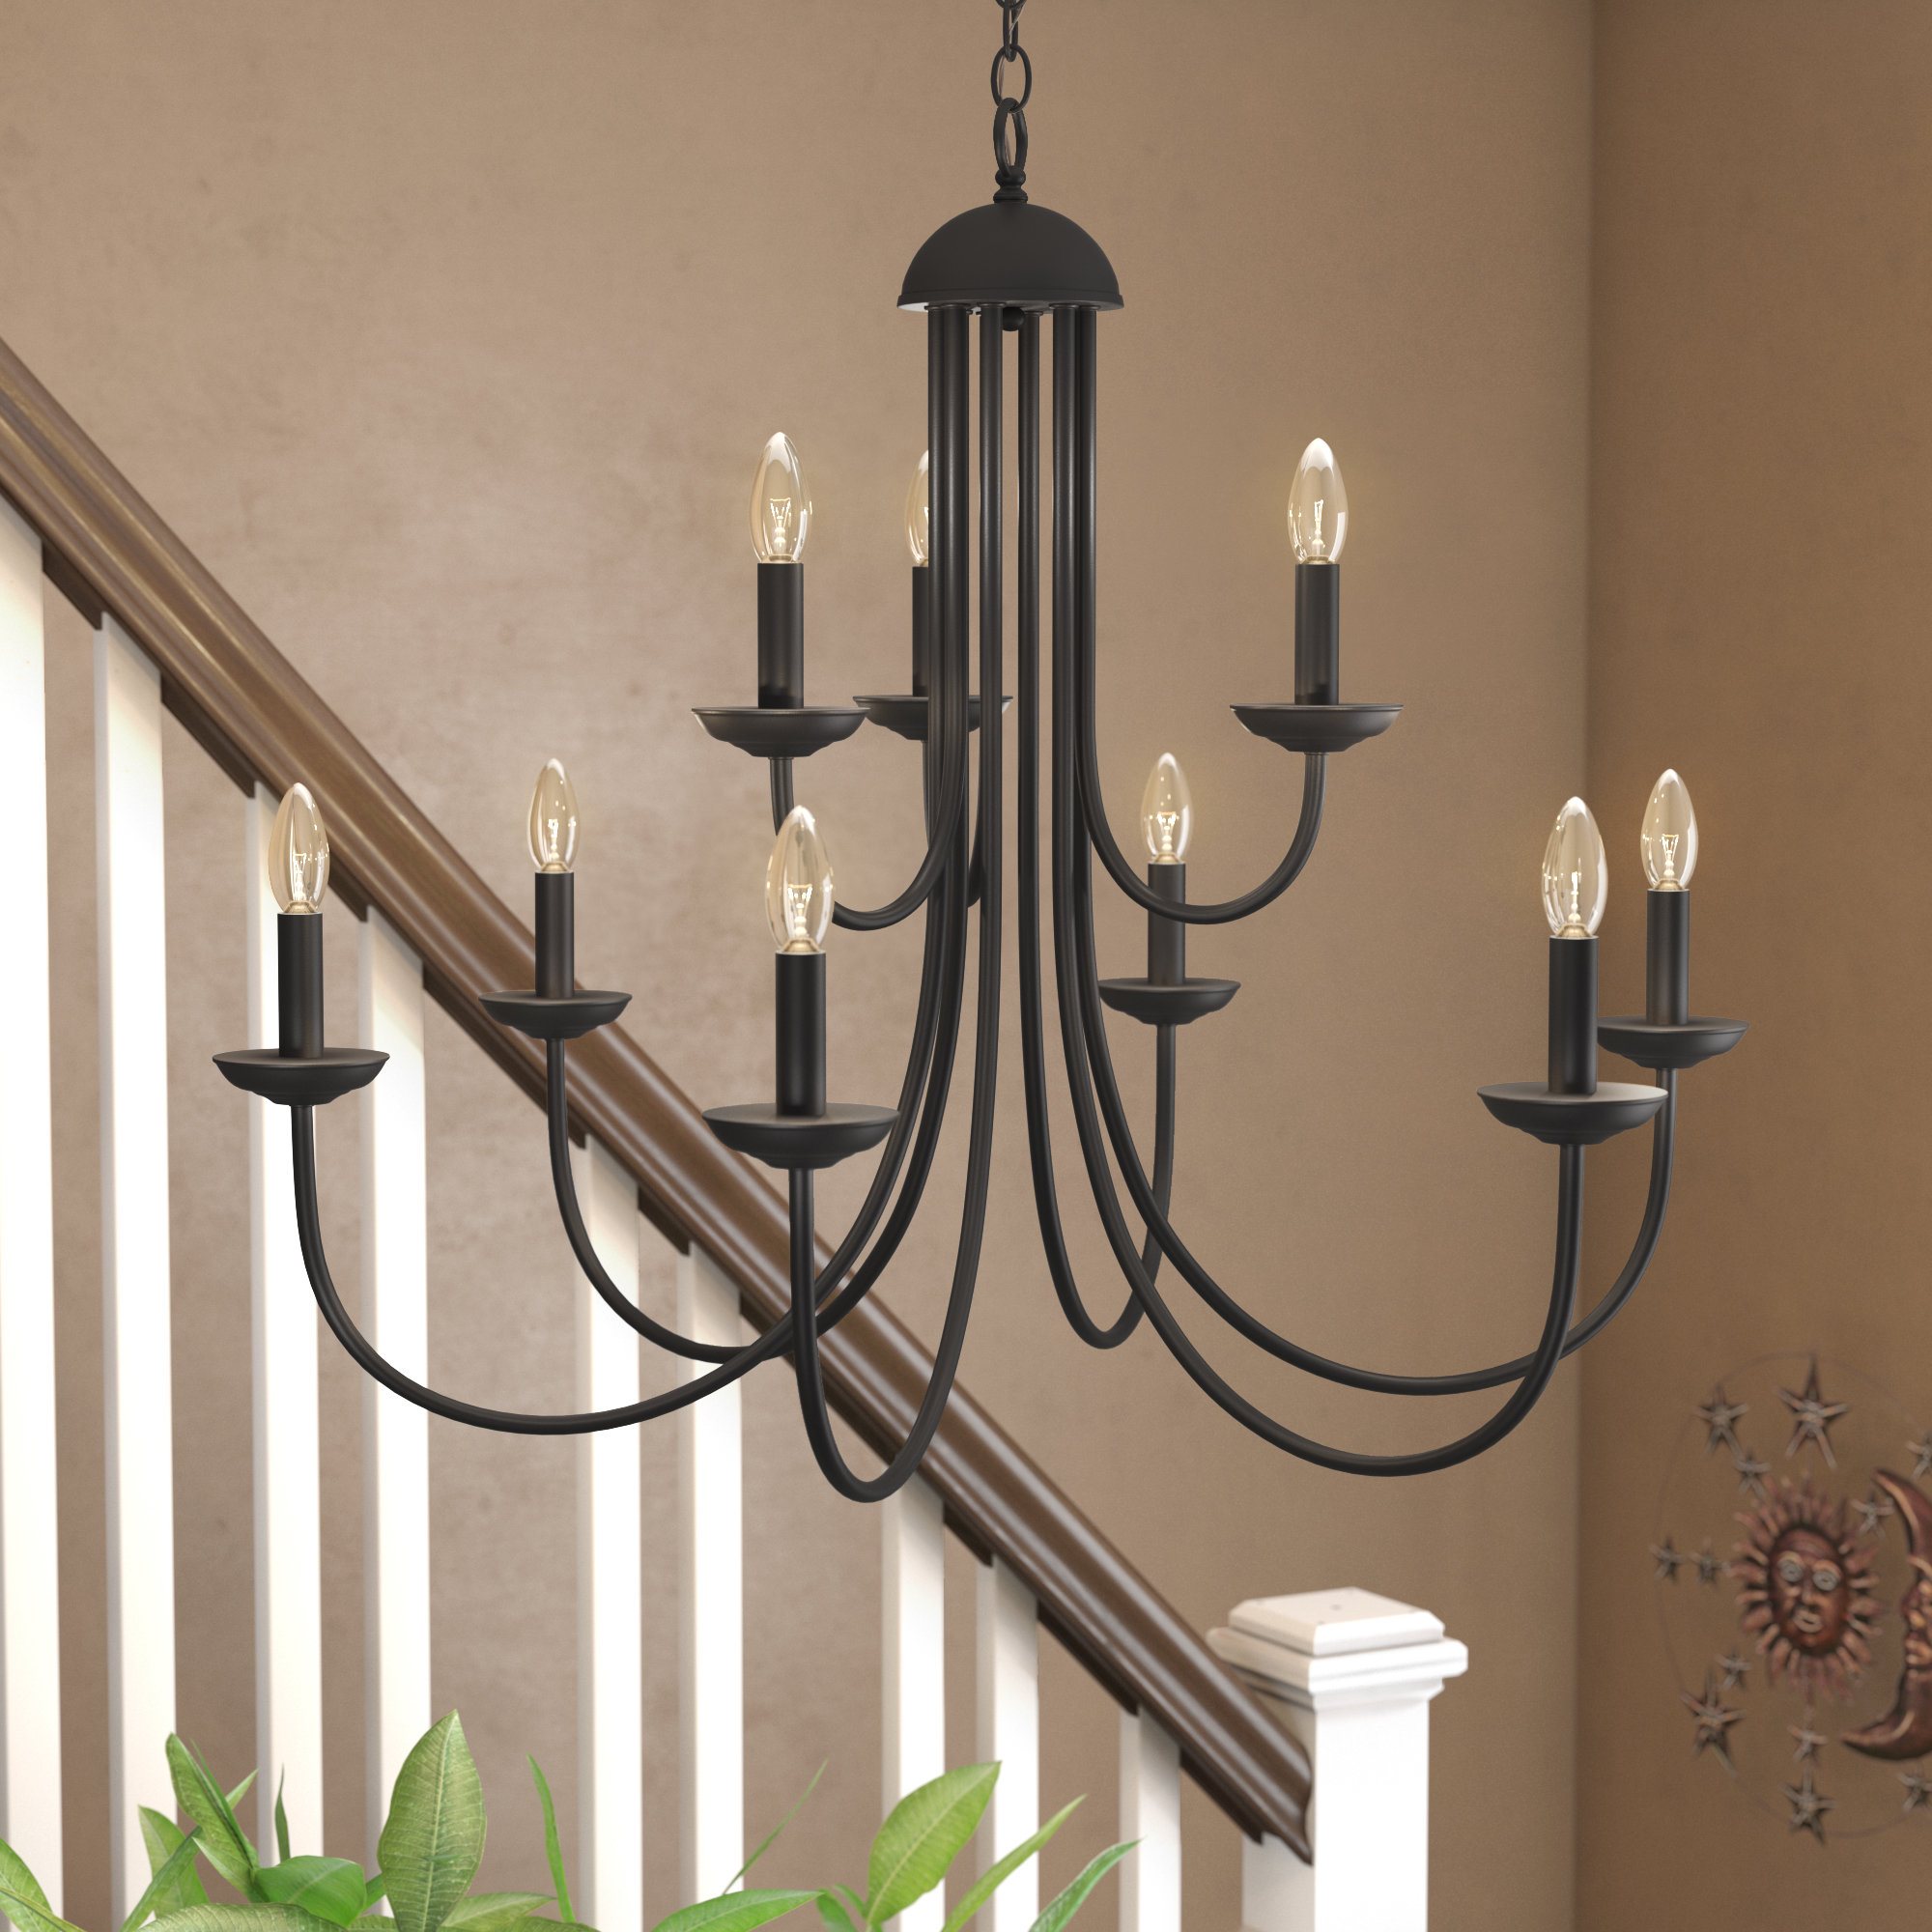 Charlton Home Bordelon 9-Light Chandelier pertaining to Watford 9-Light Candle Style Chandeliers (Image 6 of 30)